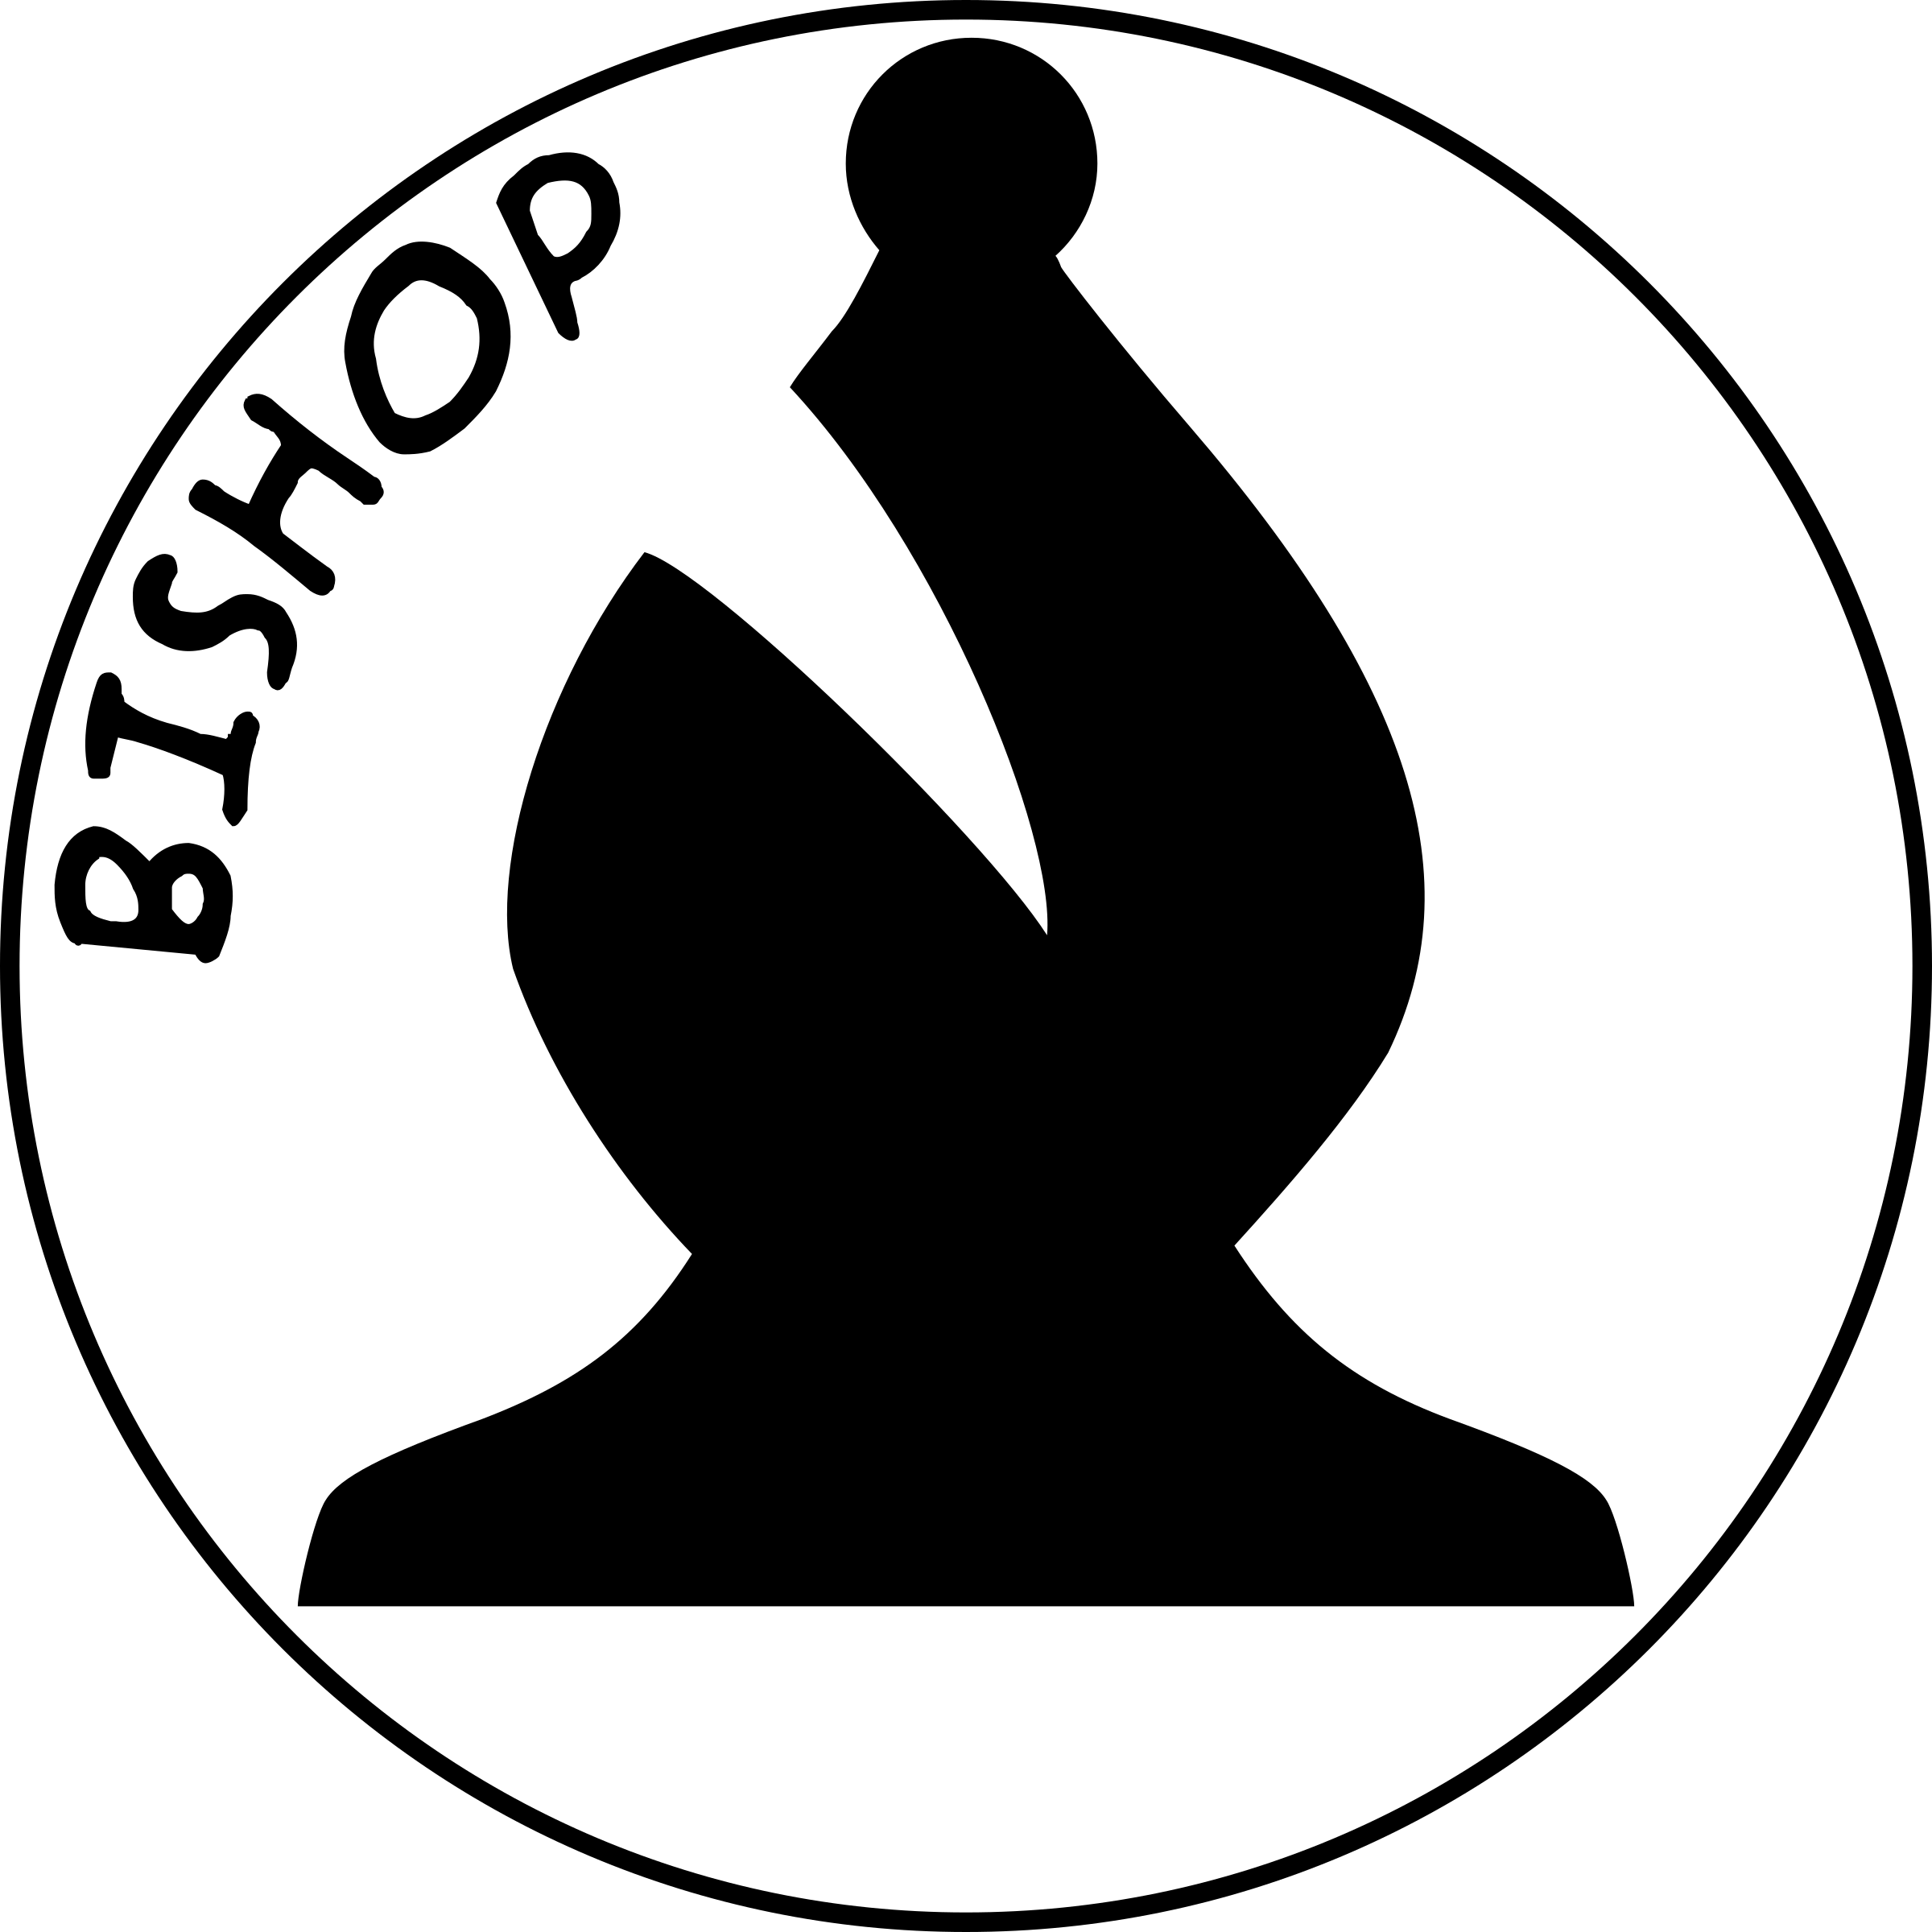 Chess Piece with Name - Black Bishop by DG-RA